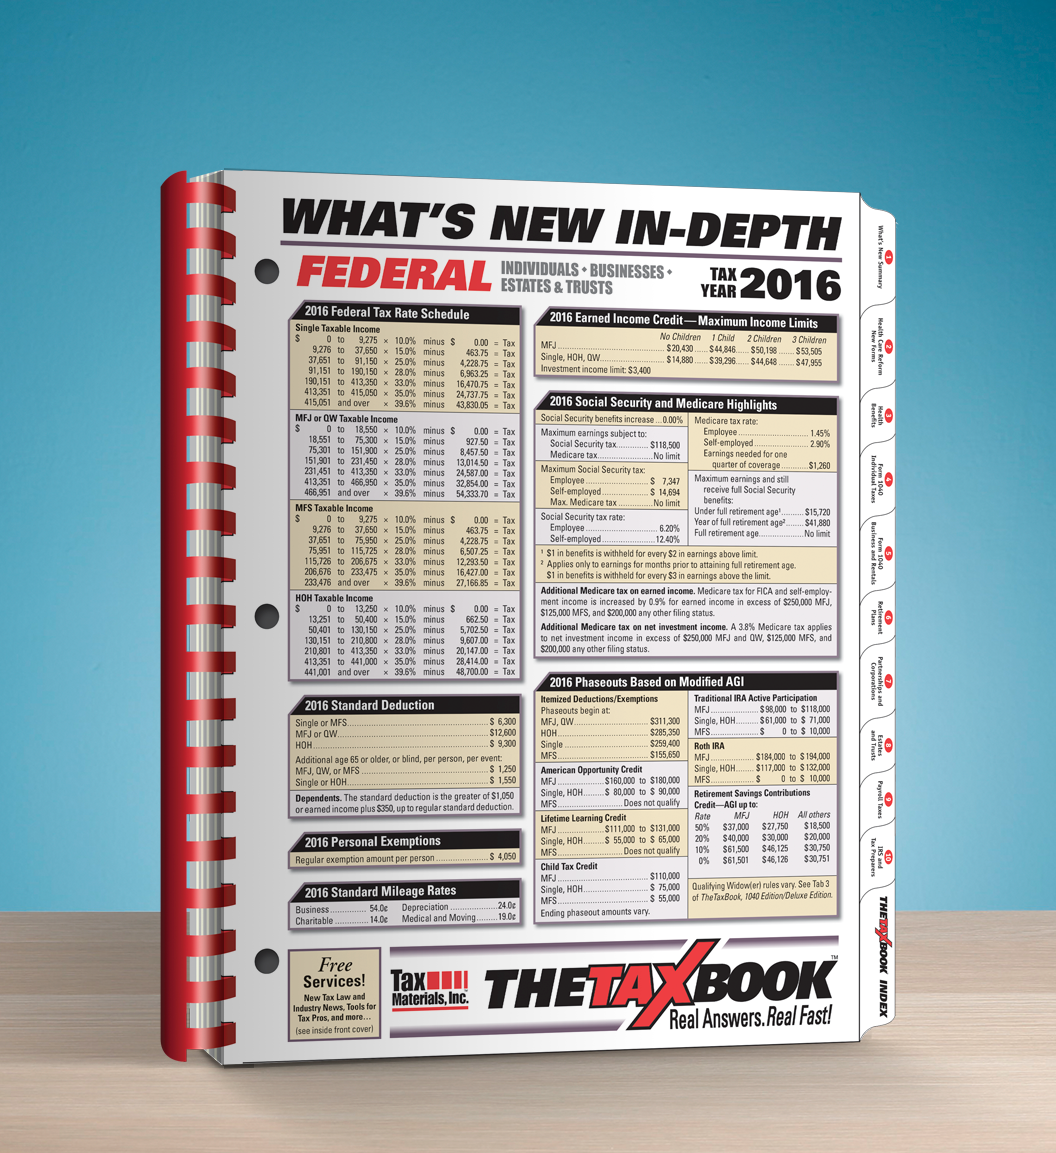 TheTaxBook What's New In Depth Edition (2016) - #3695